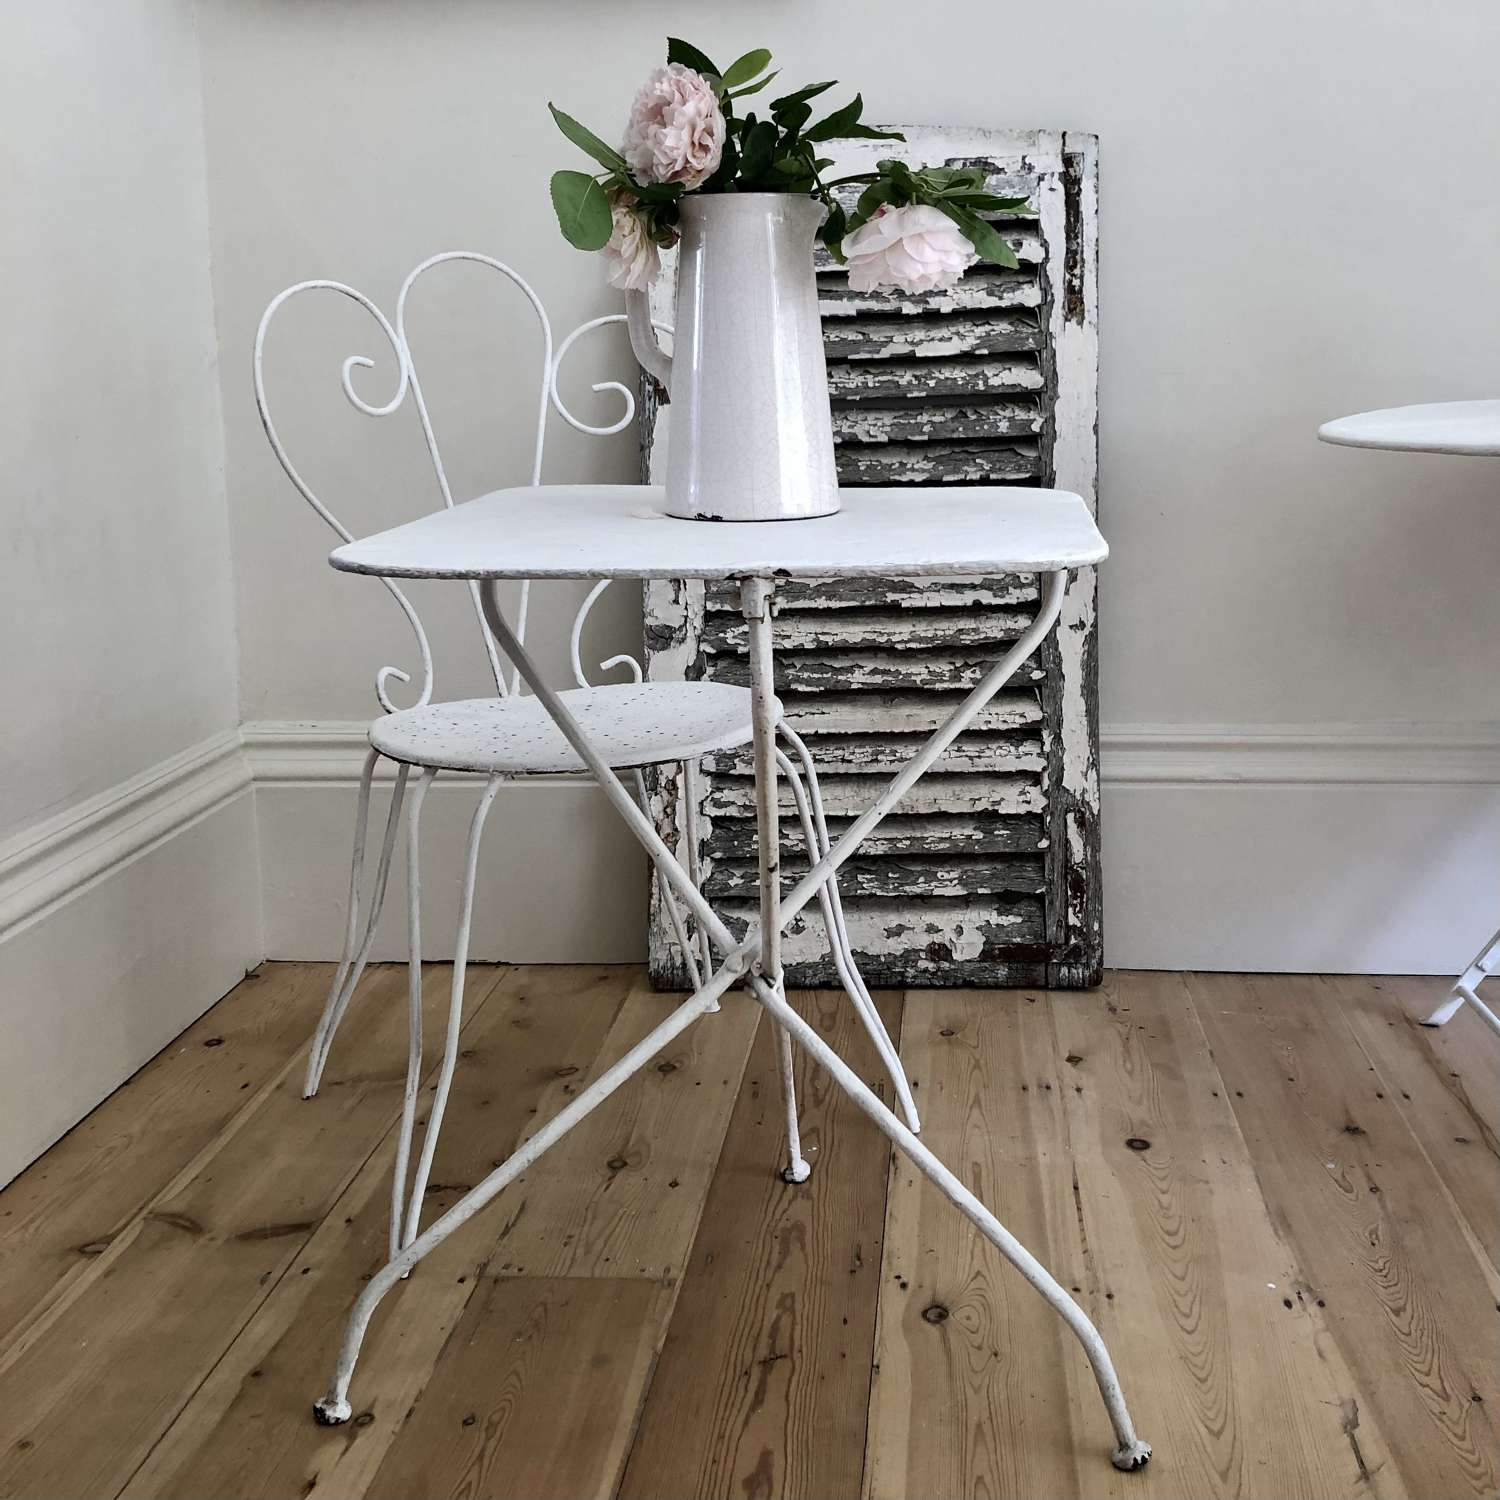 Antique French garden bistro table and chair